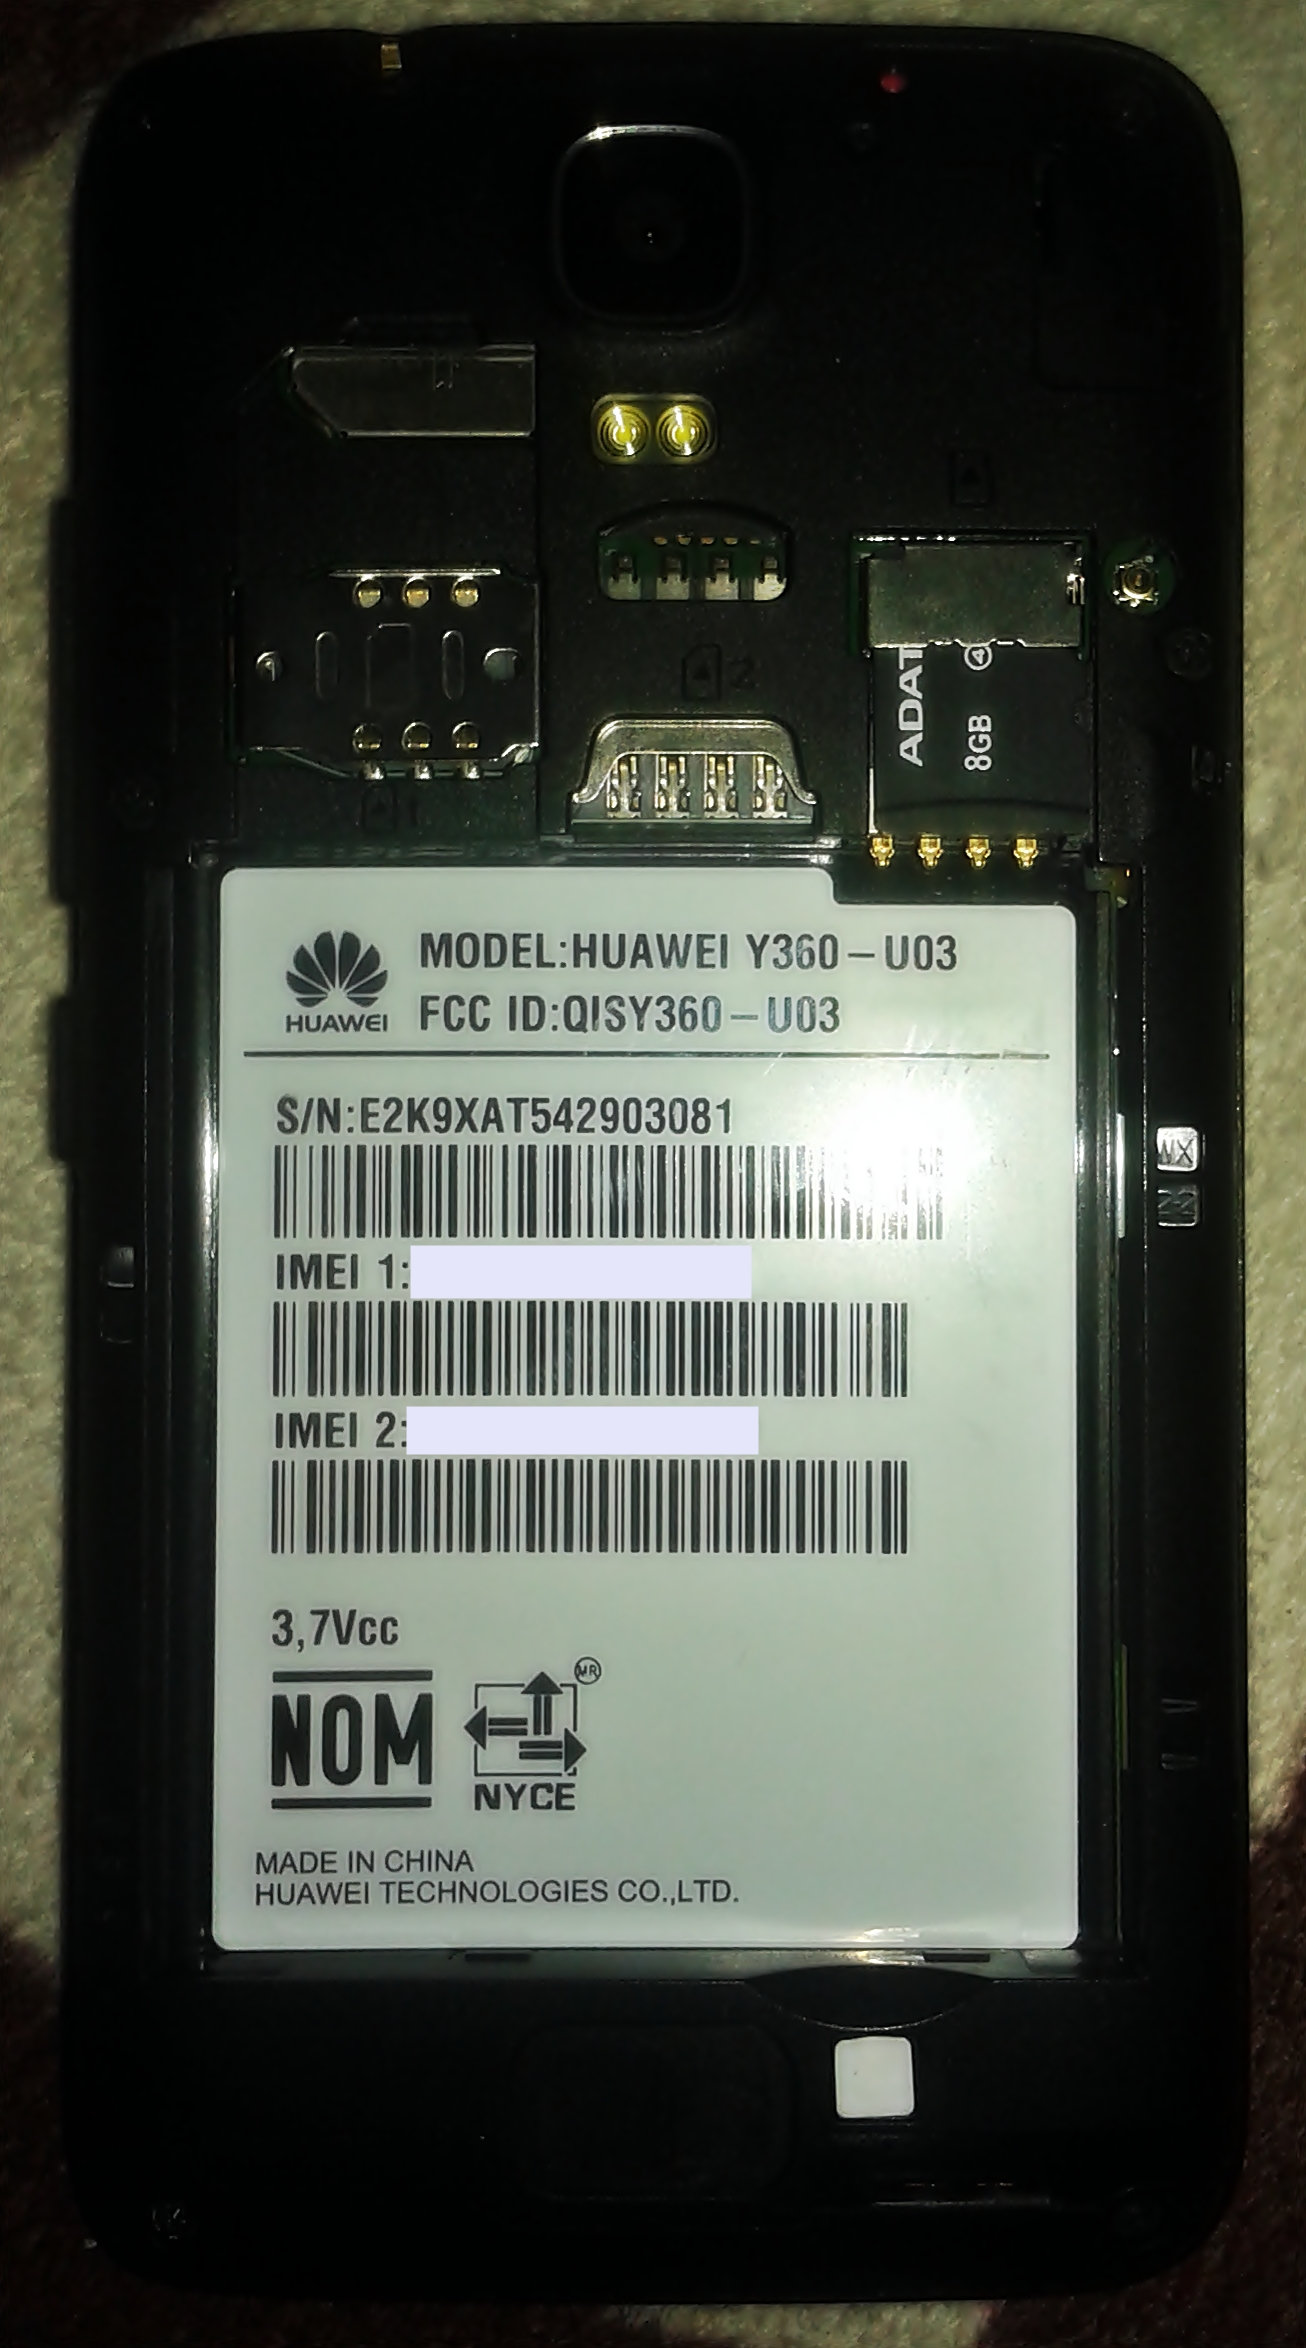 File:Huawei Y360 Rear View without battery jpg - Wikimedia Commons